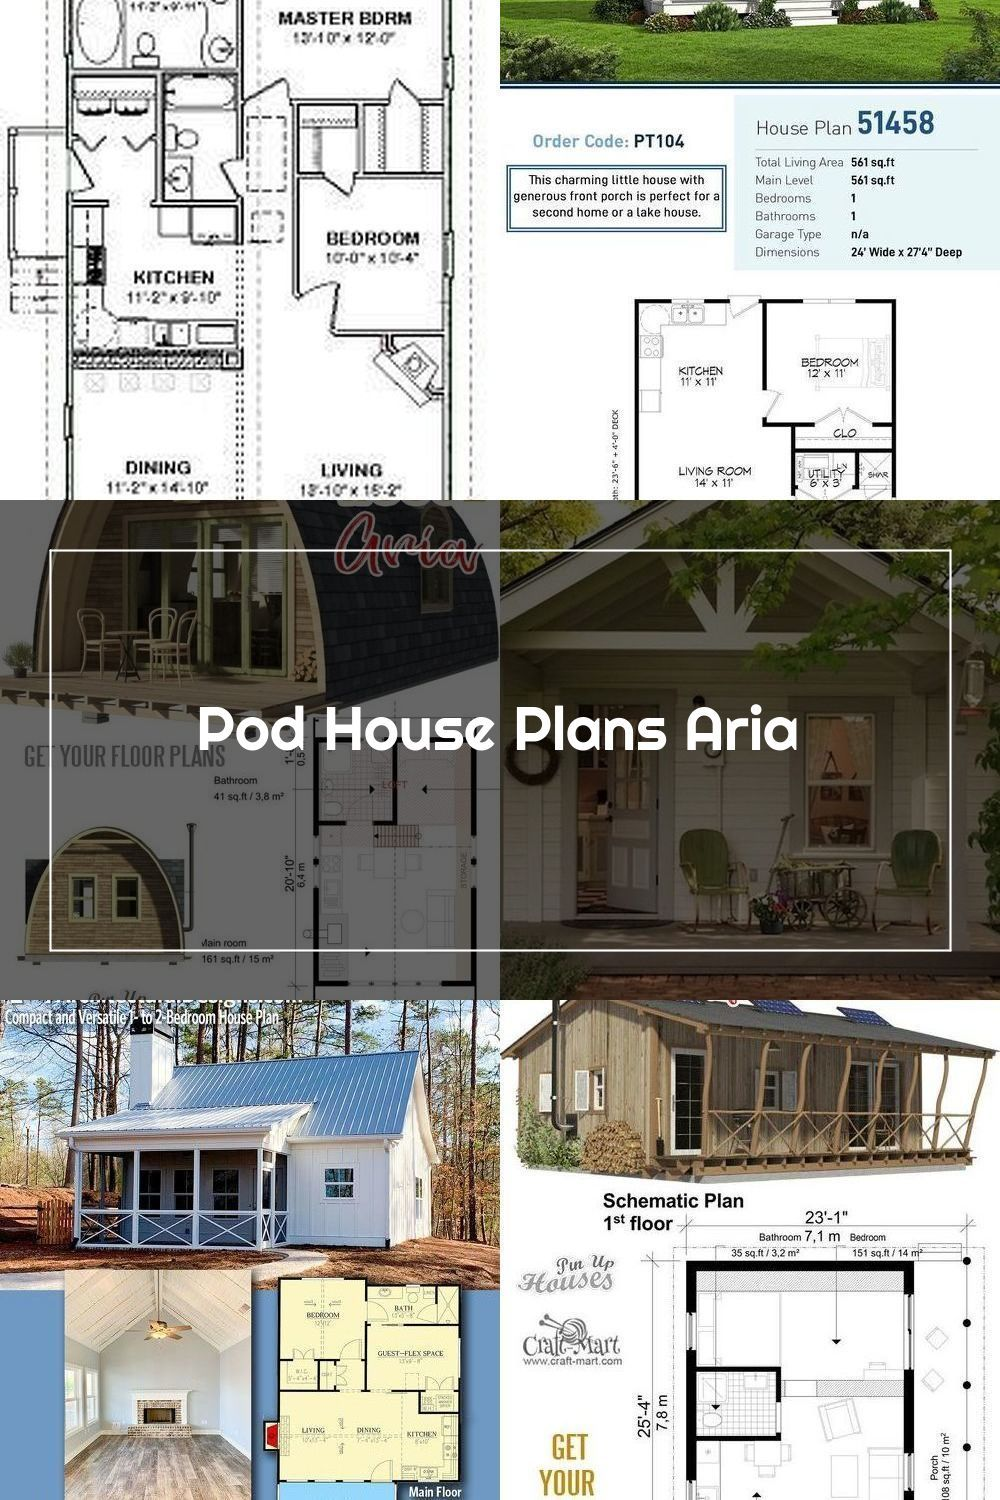 Small And Tiny Home Plans With Cost To Build Pod House Plans Aria In 2020 Pod House House Plans Small House Plans